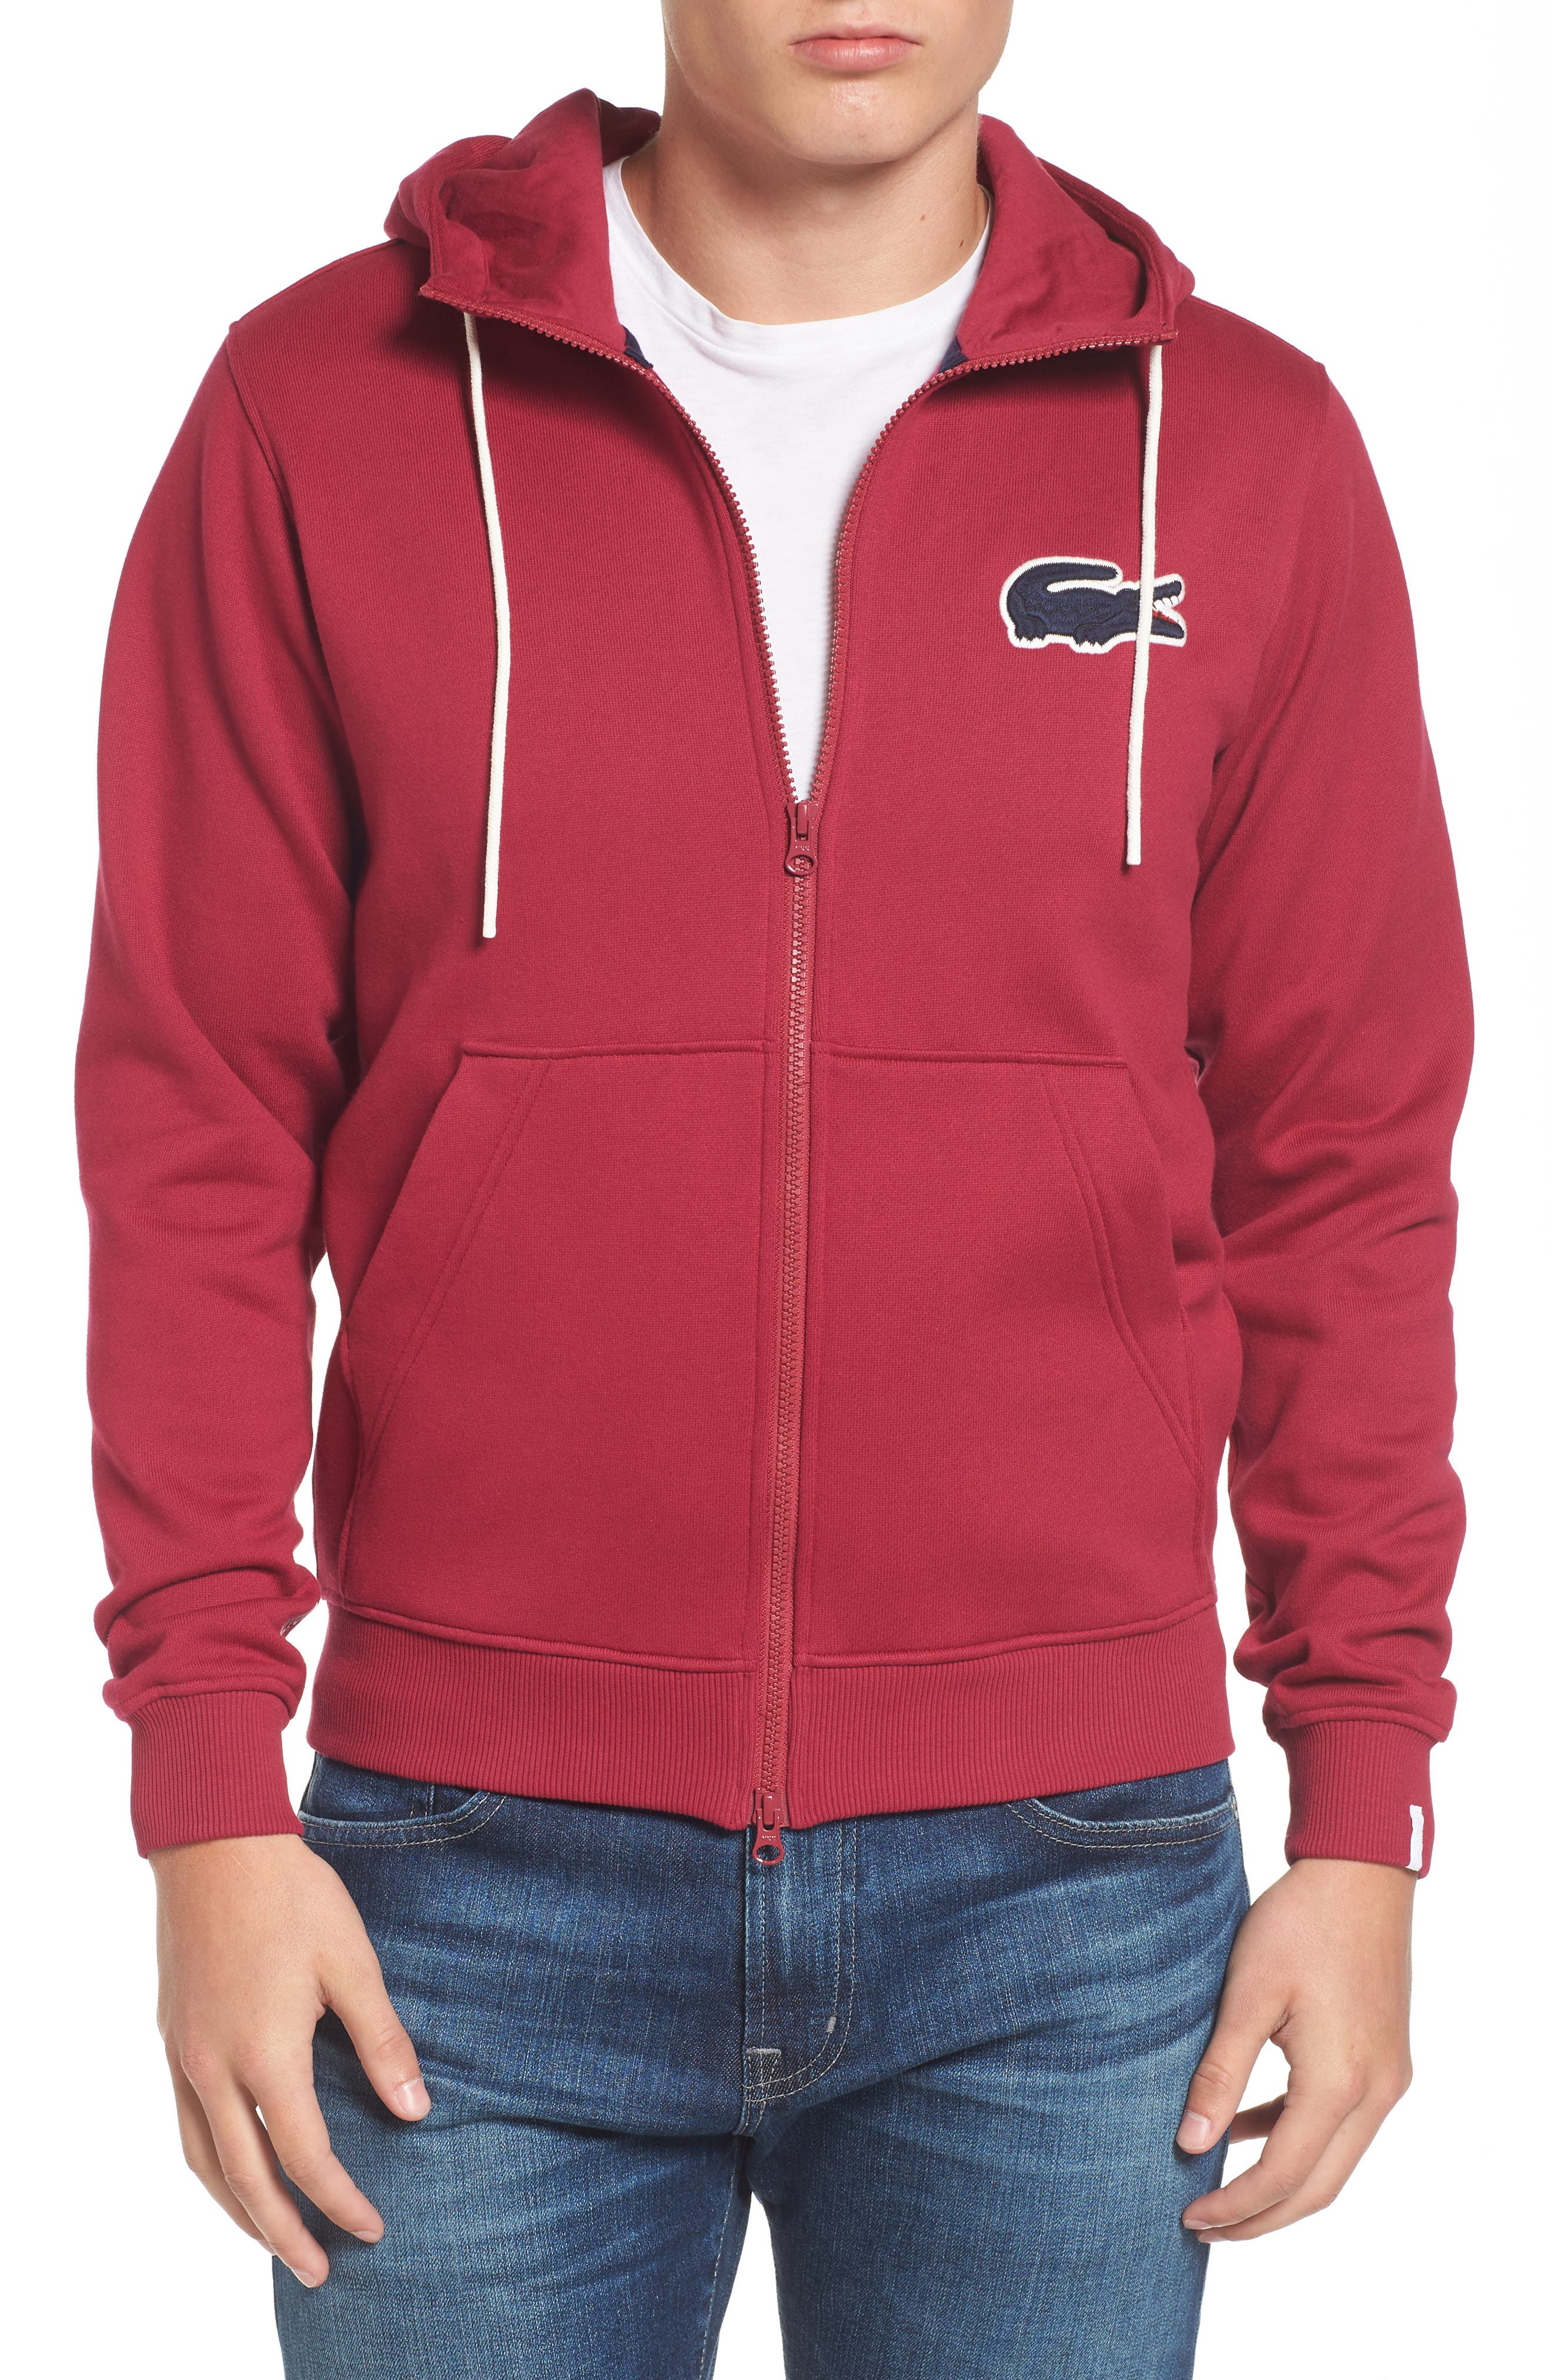 Hoodies, Sweatshirts & Fleece for Men | Nordstrom